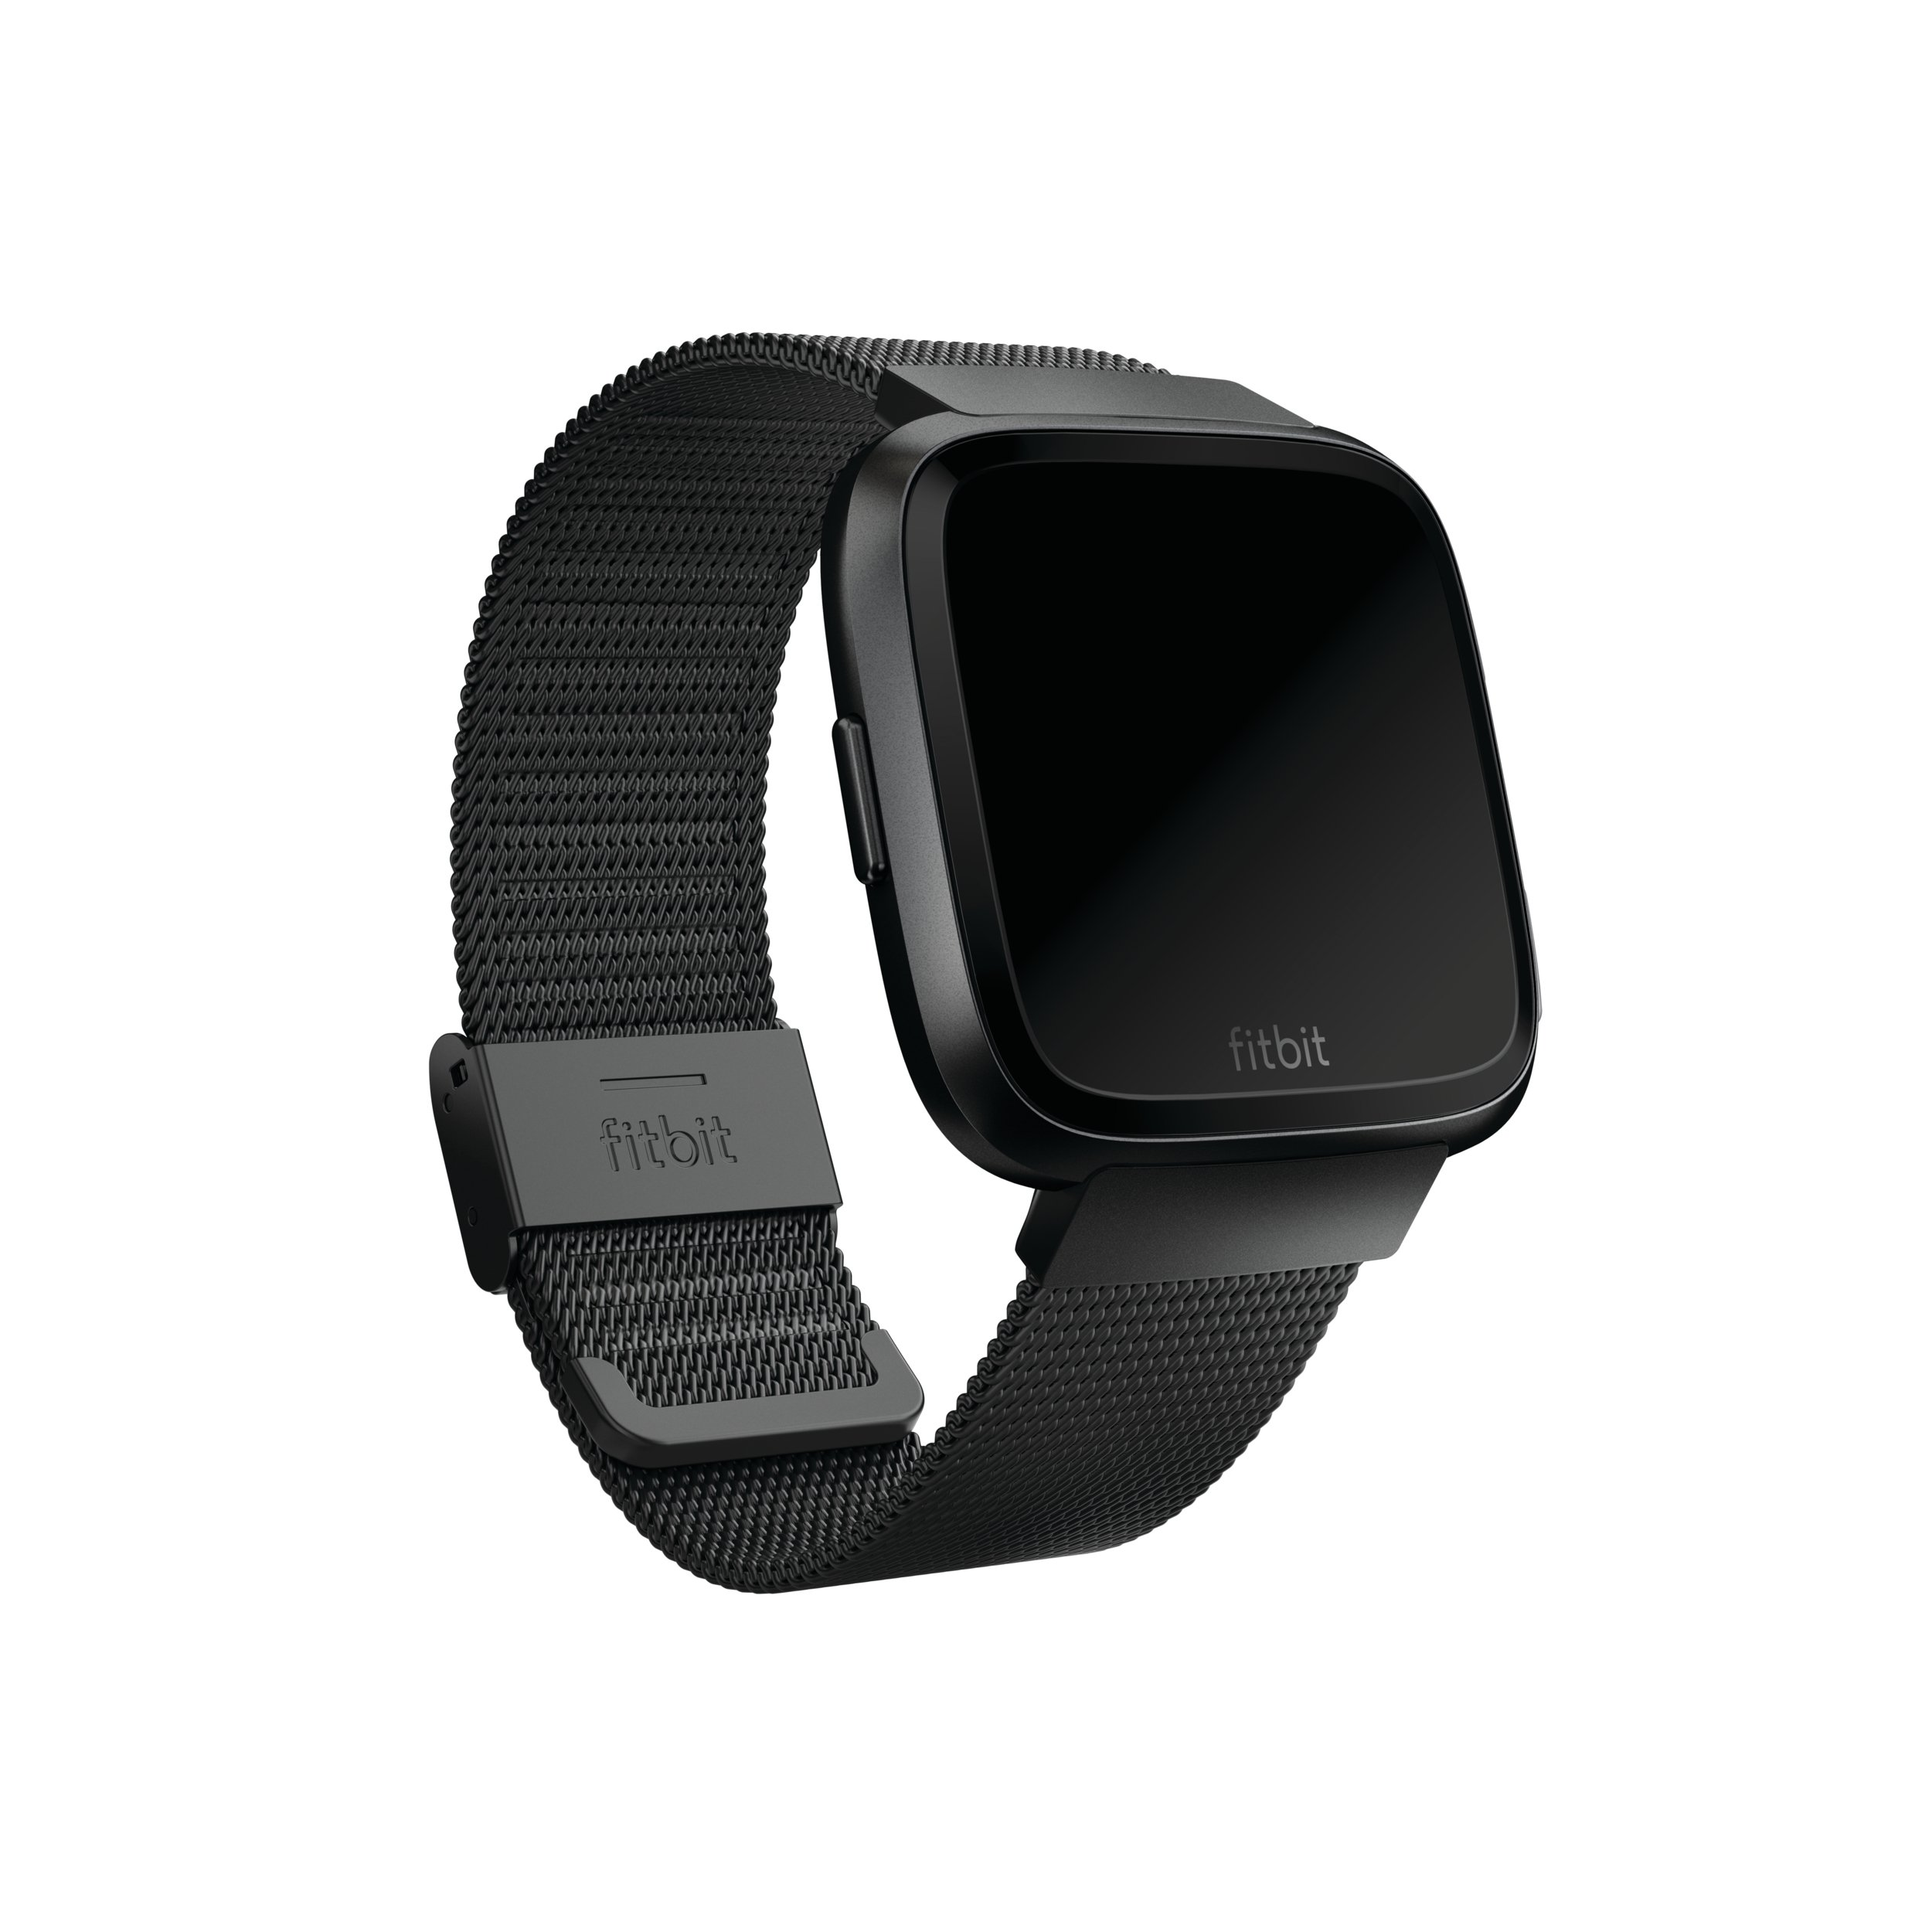 Fitbit Versa Family Accessory Band, Official Fitbit Product, Stainless Steel Mesh, Black, One Size by Fitbit (Image #4)